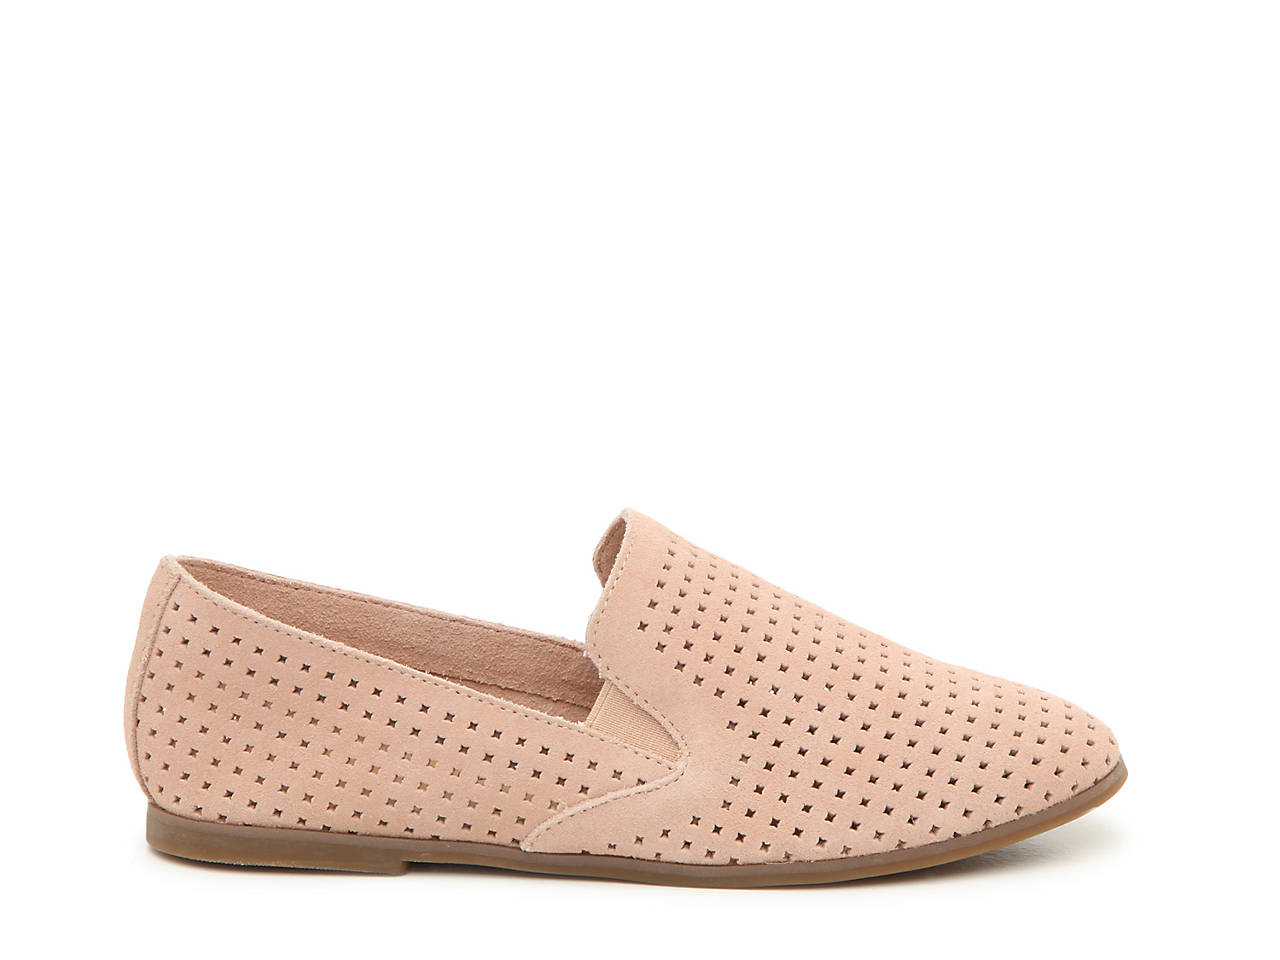 fd97c35ecfa Lucky Brand Carthy Loafer Women s Shoes